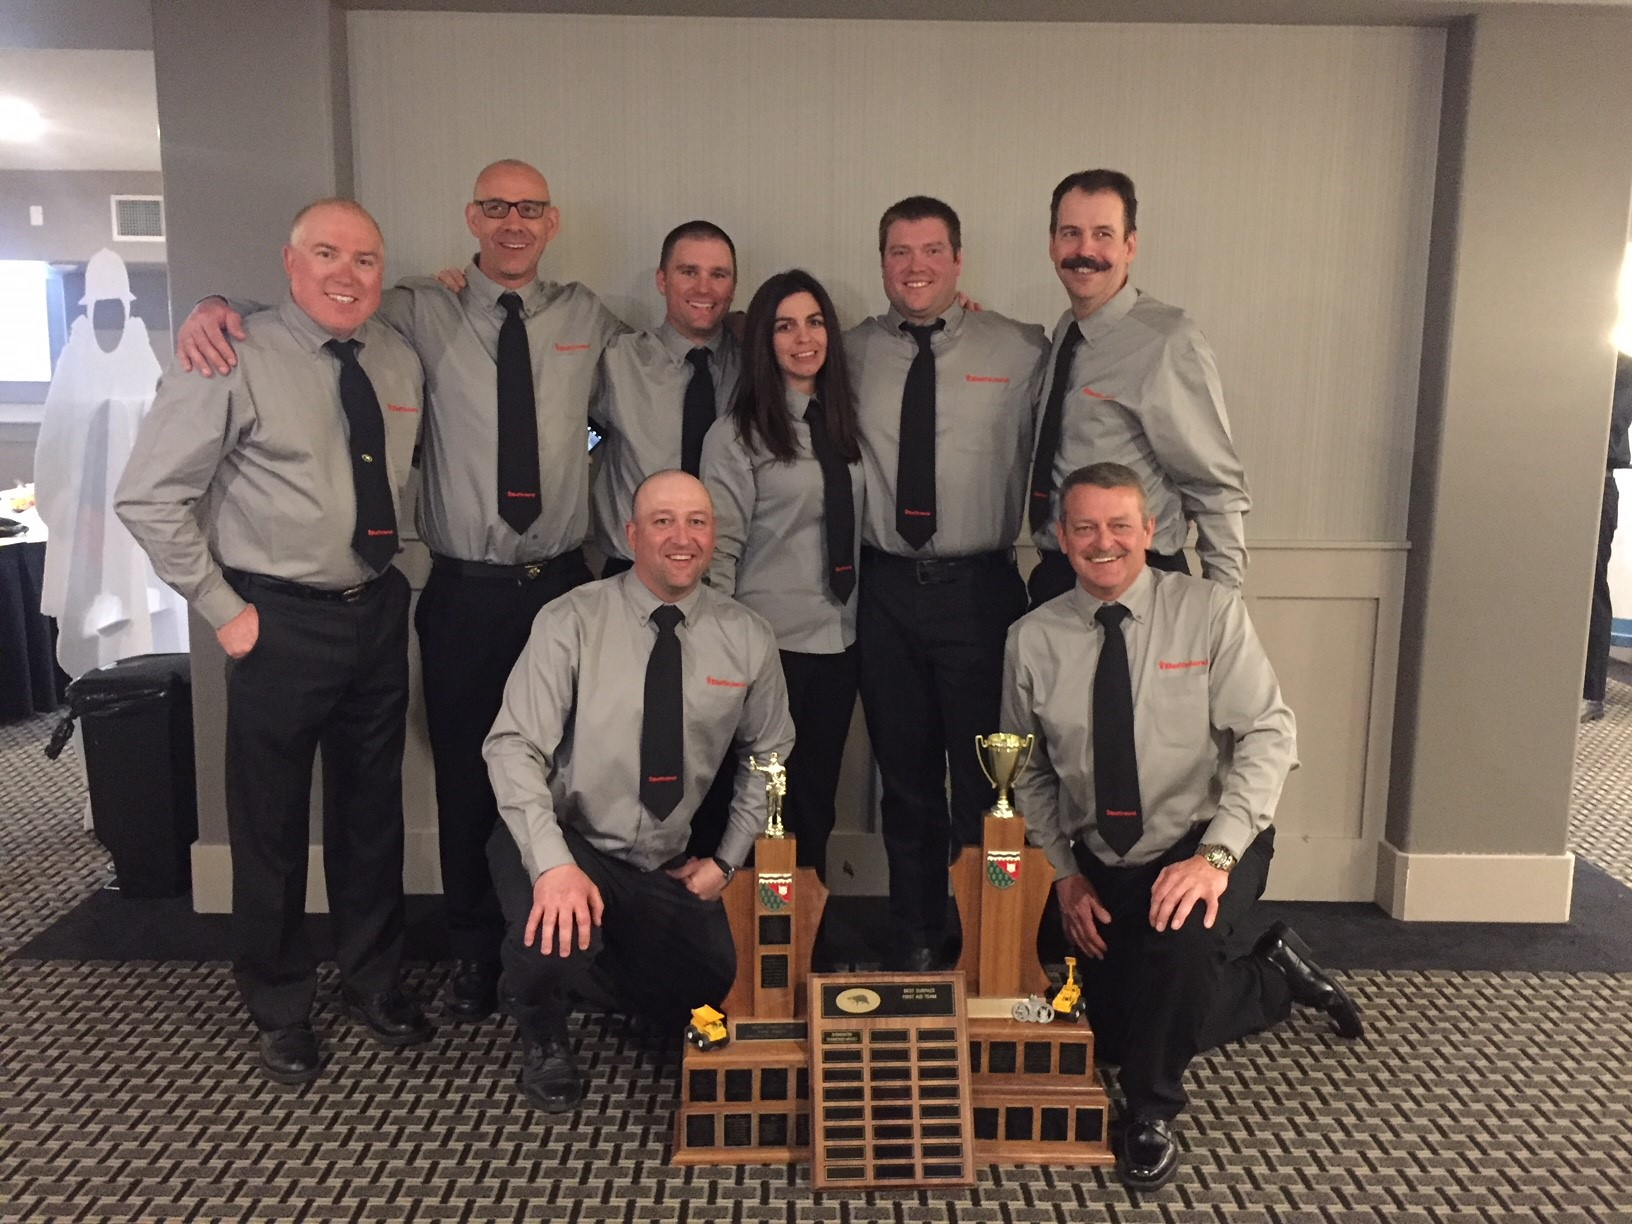 Team Coach - Dalton Head and MRT team members Steve Janknegt, Kyle Hewey, Lorne Anderson, Terra Oye, Mat Johnson, Marc Robidas, Ray Boyd